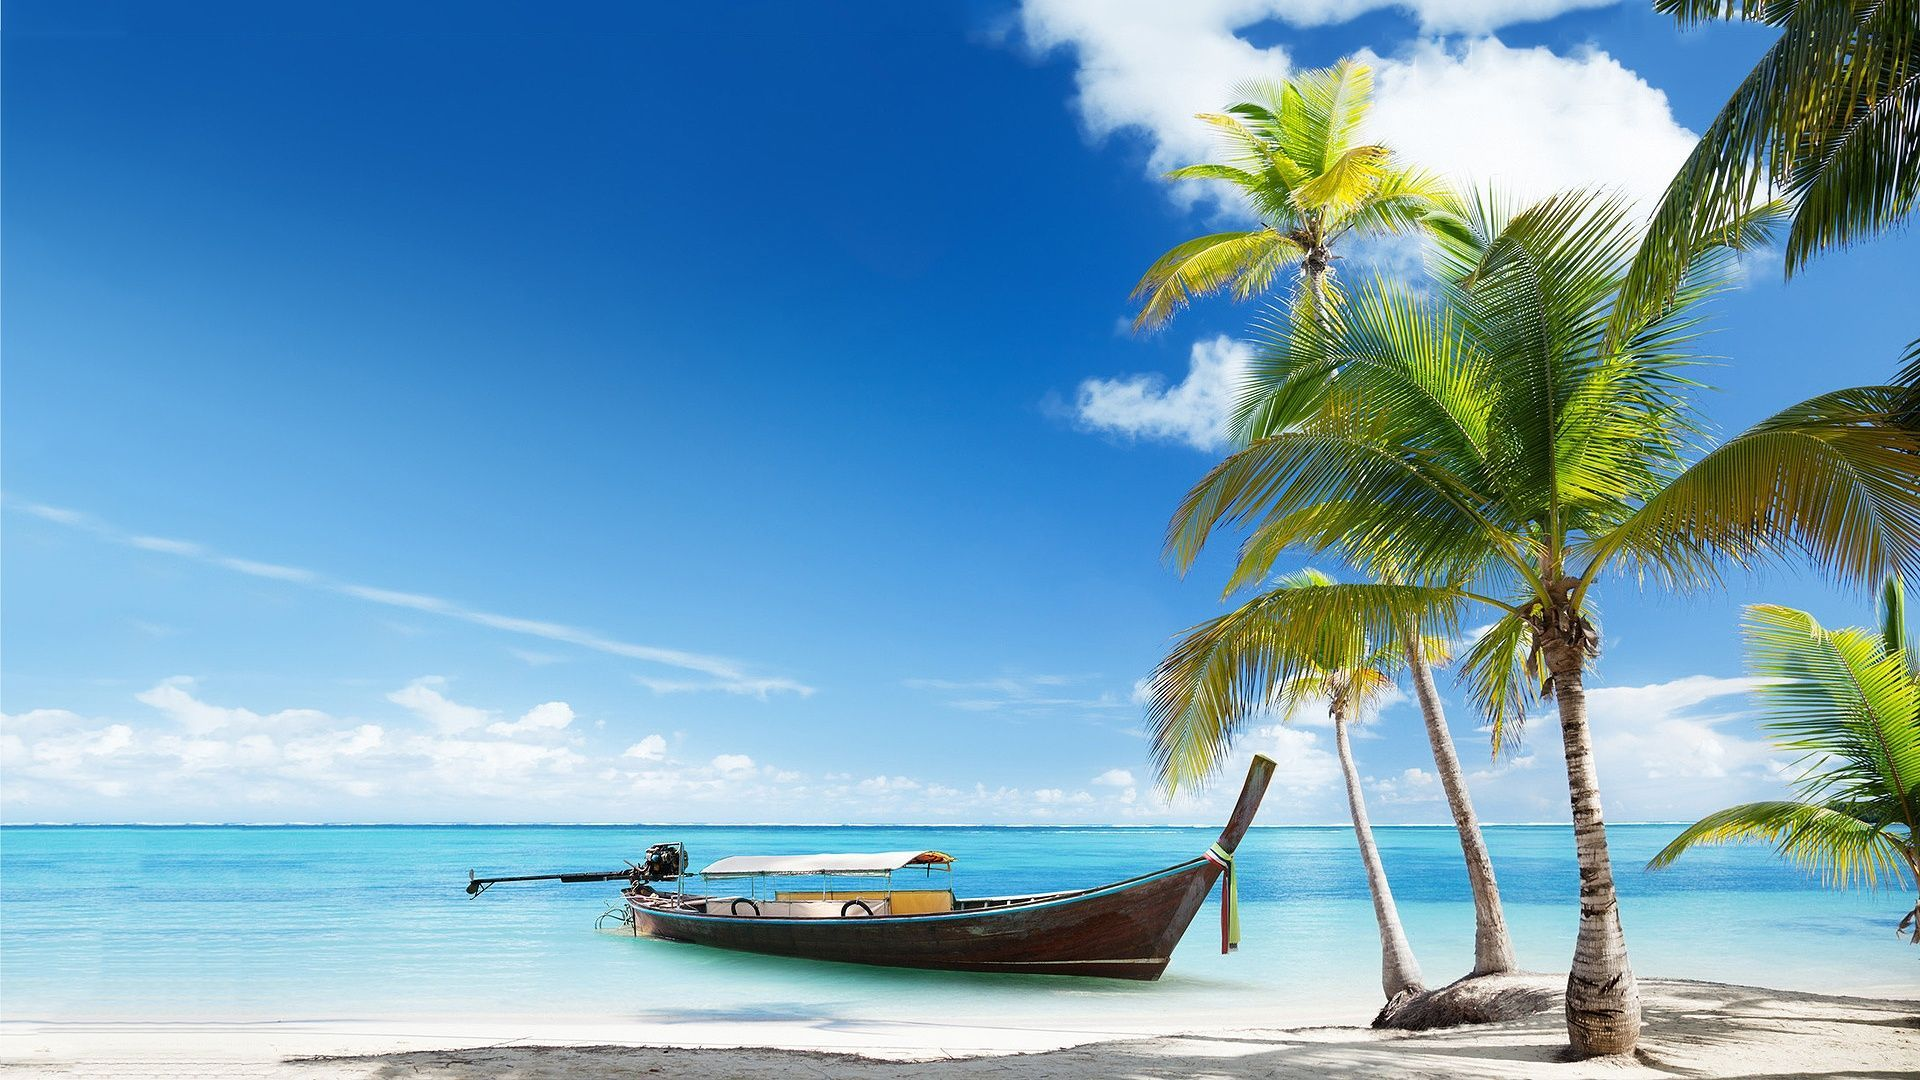 Tropical beach quotes Funny vacation wallpapers top funny 1920x1080